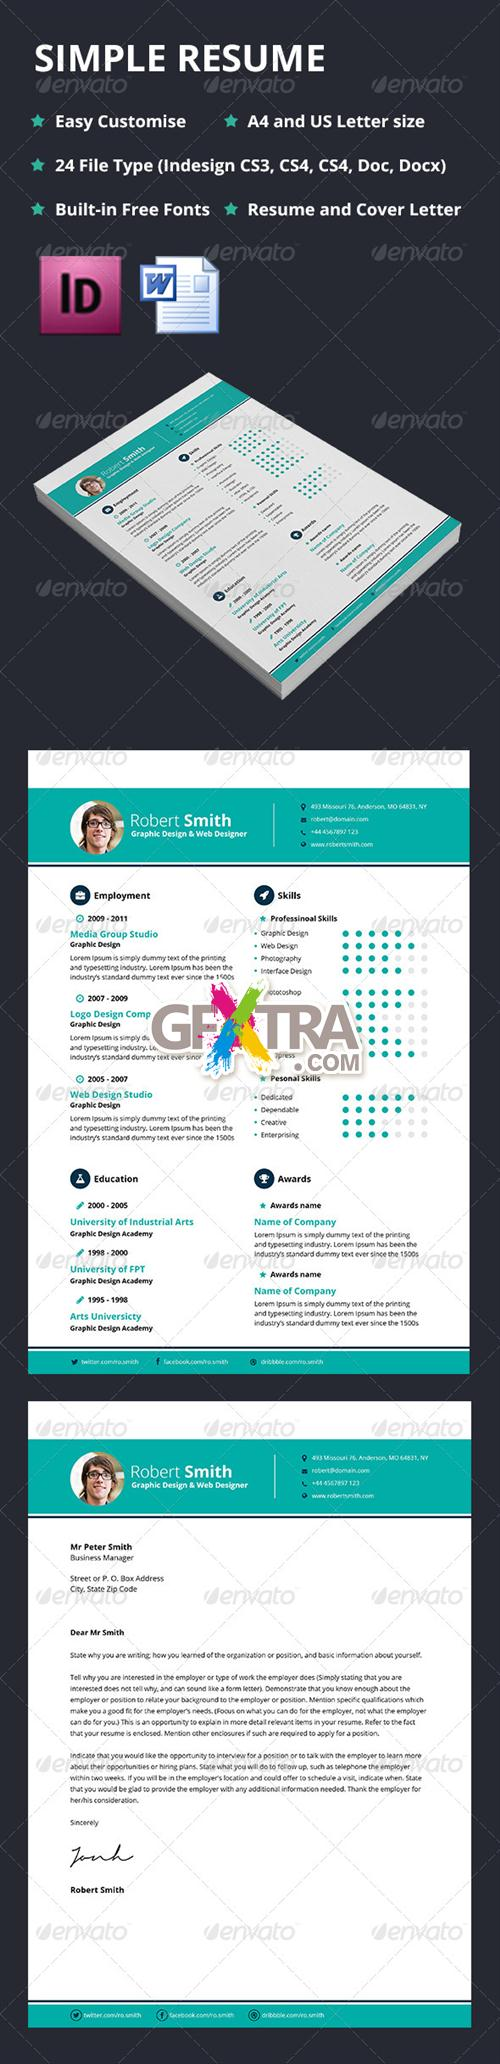 GraphicRiver - Simple Resume